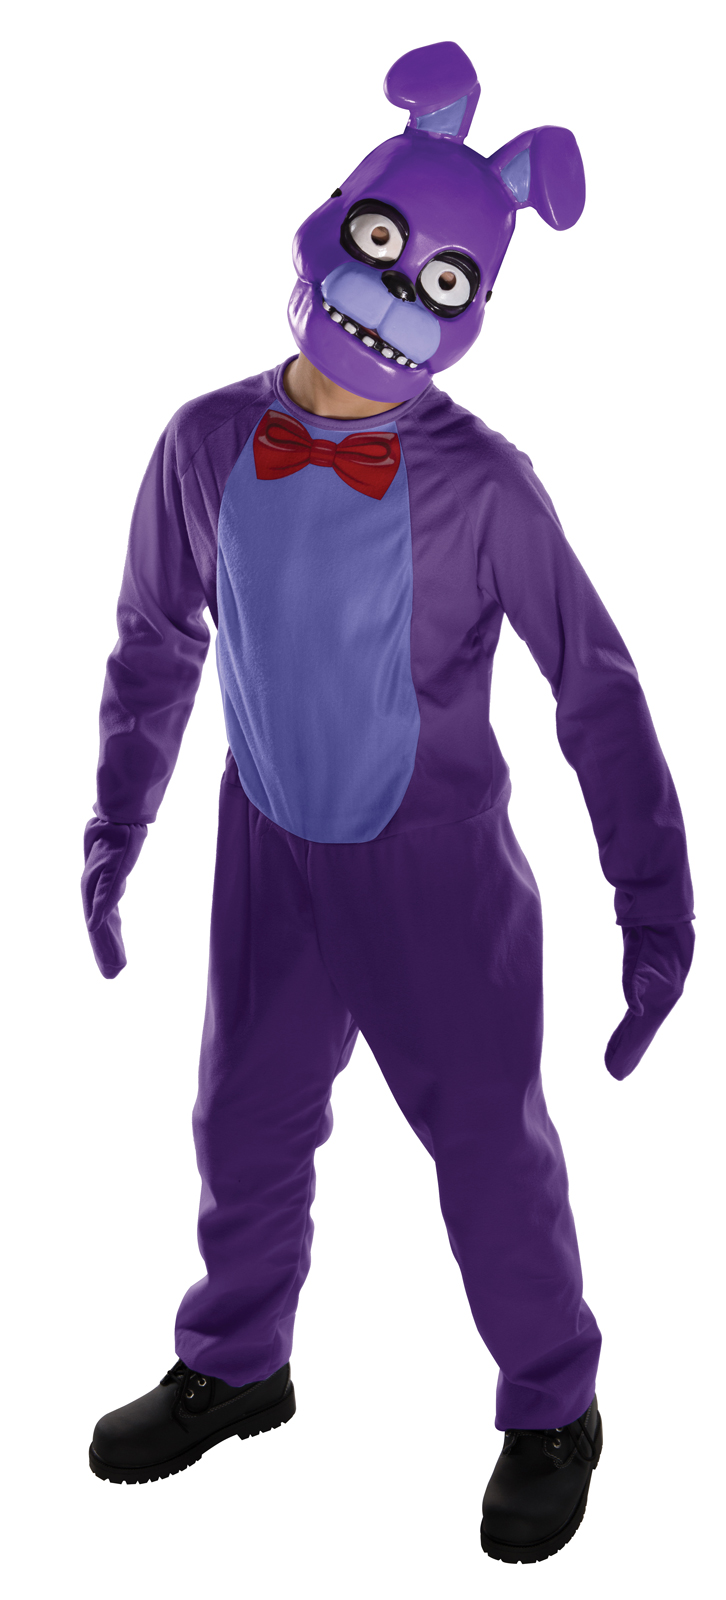 Department costume themes five nights at freddys bonnie child costume